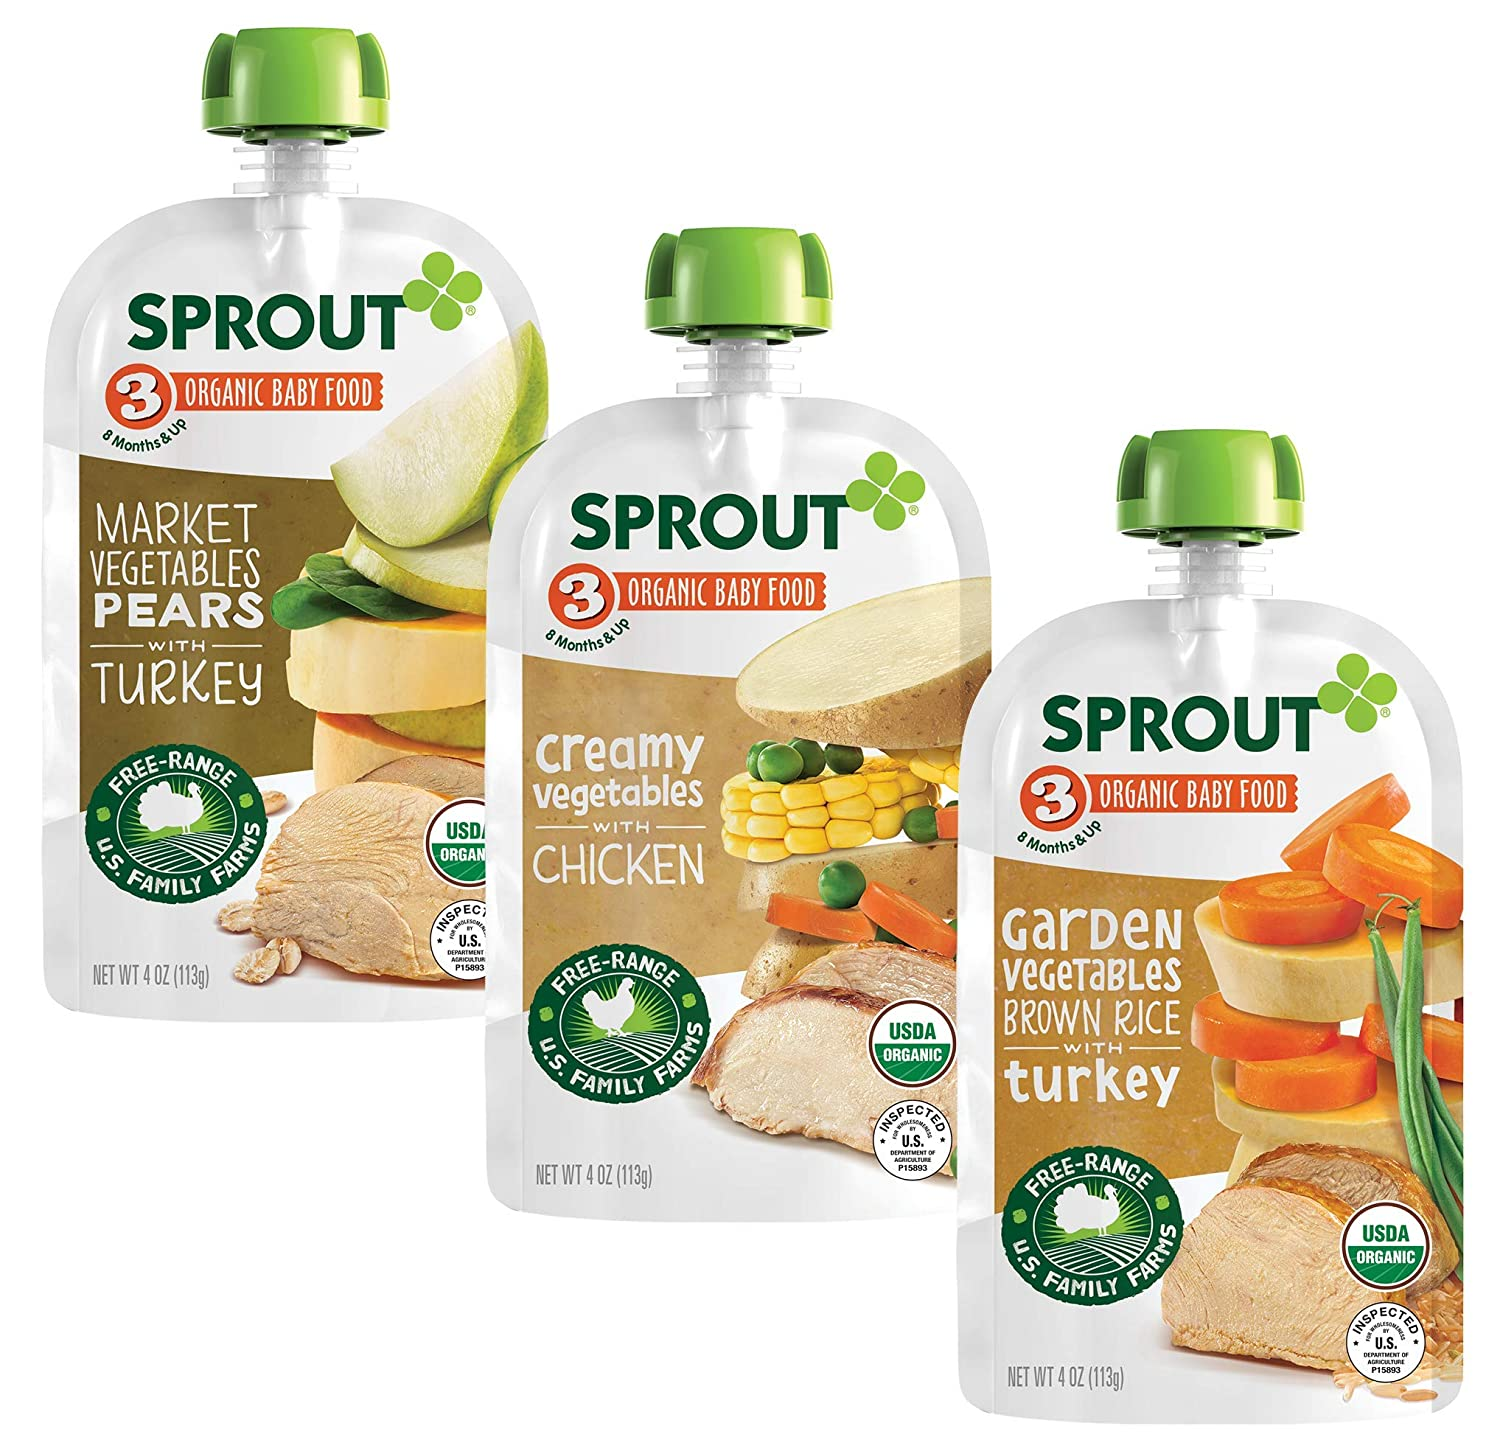 Sprout Organic Stage 3 Baby Food Pouches, Meat Variety, 4 Ounce (Pack of 18) 6 of Each: Creamy Veg w/ Chicken, Market Veg Pears w/ Turkey & Garden Veg Brown Rice w/ Turkey